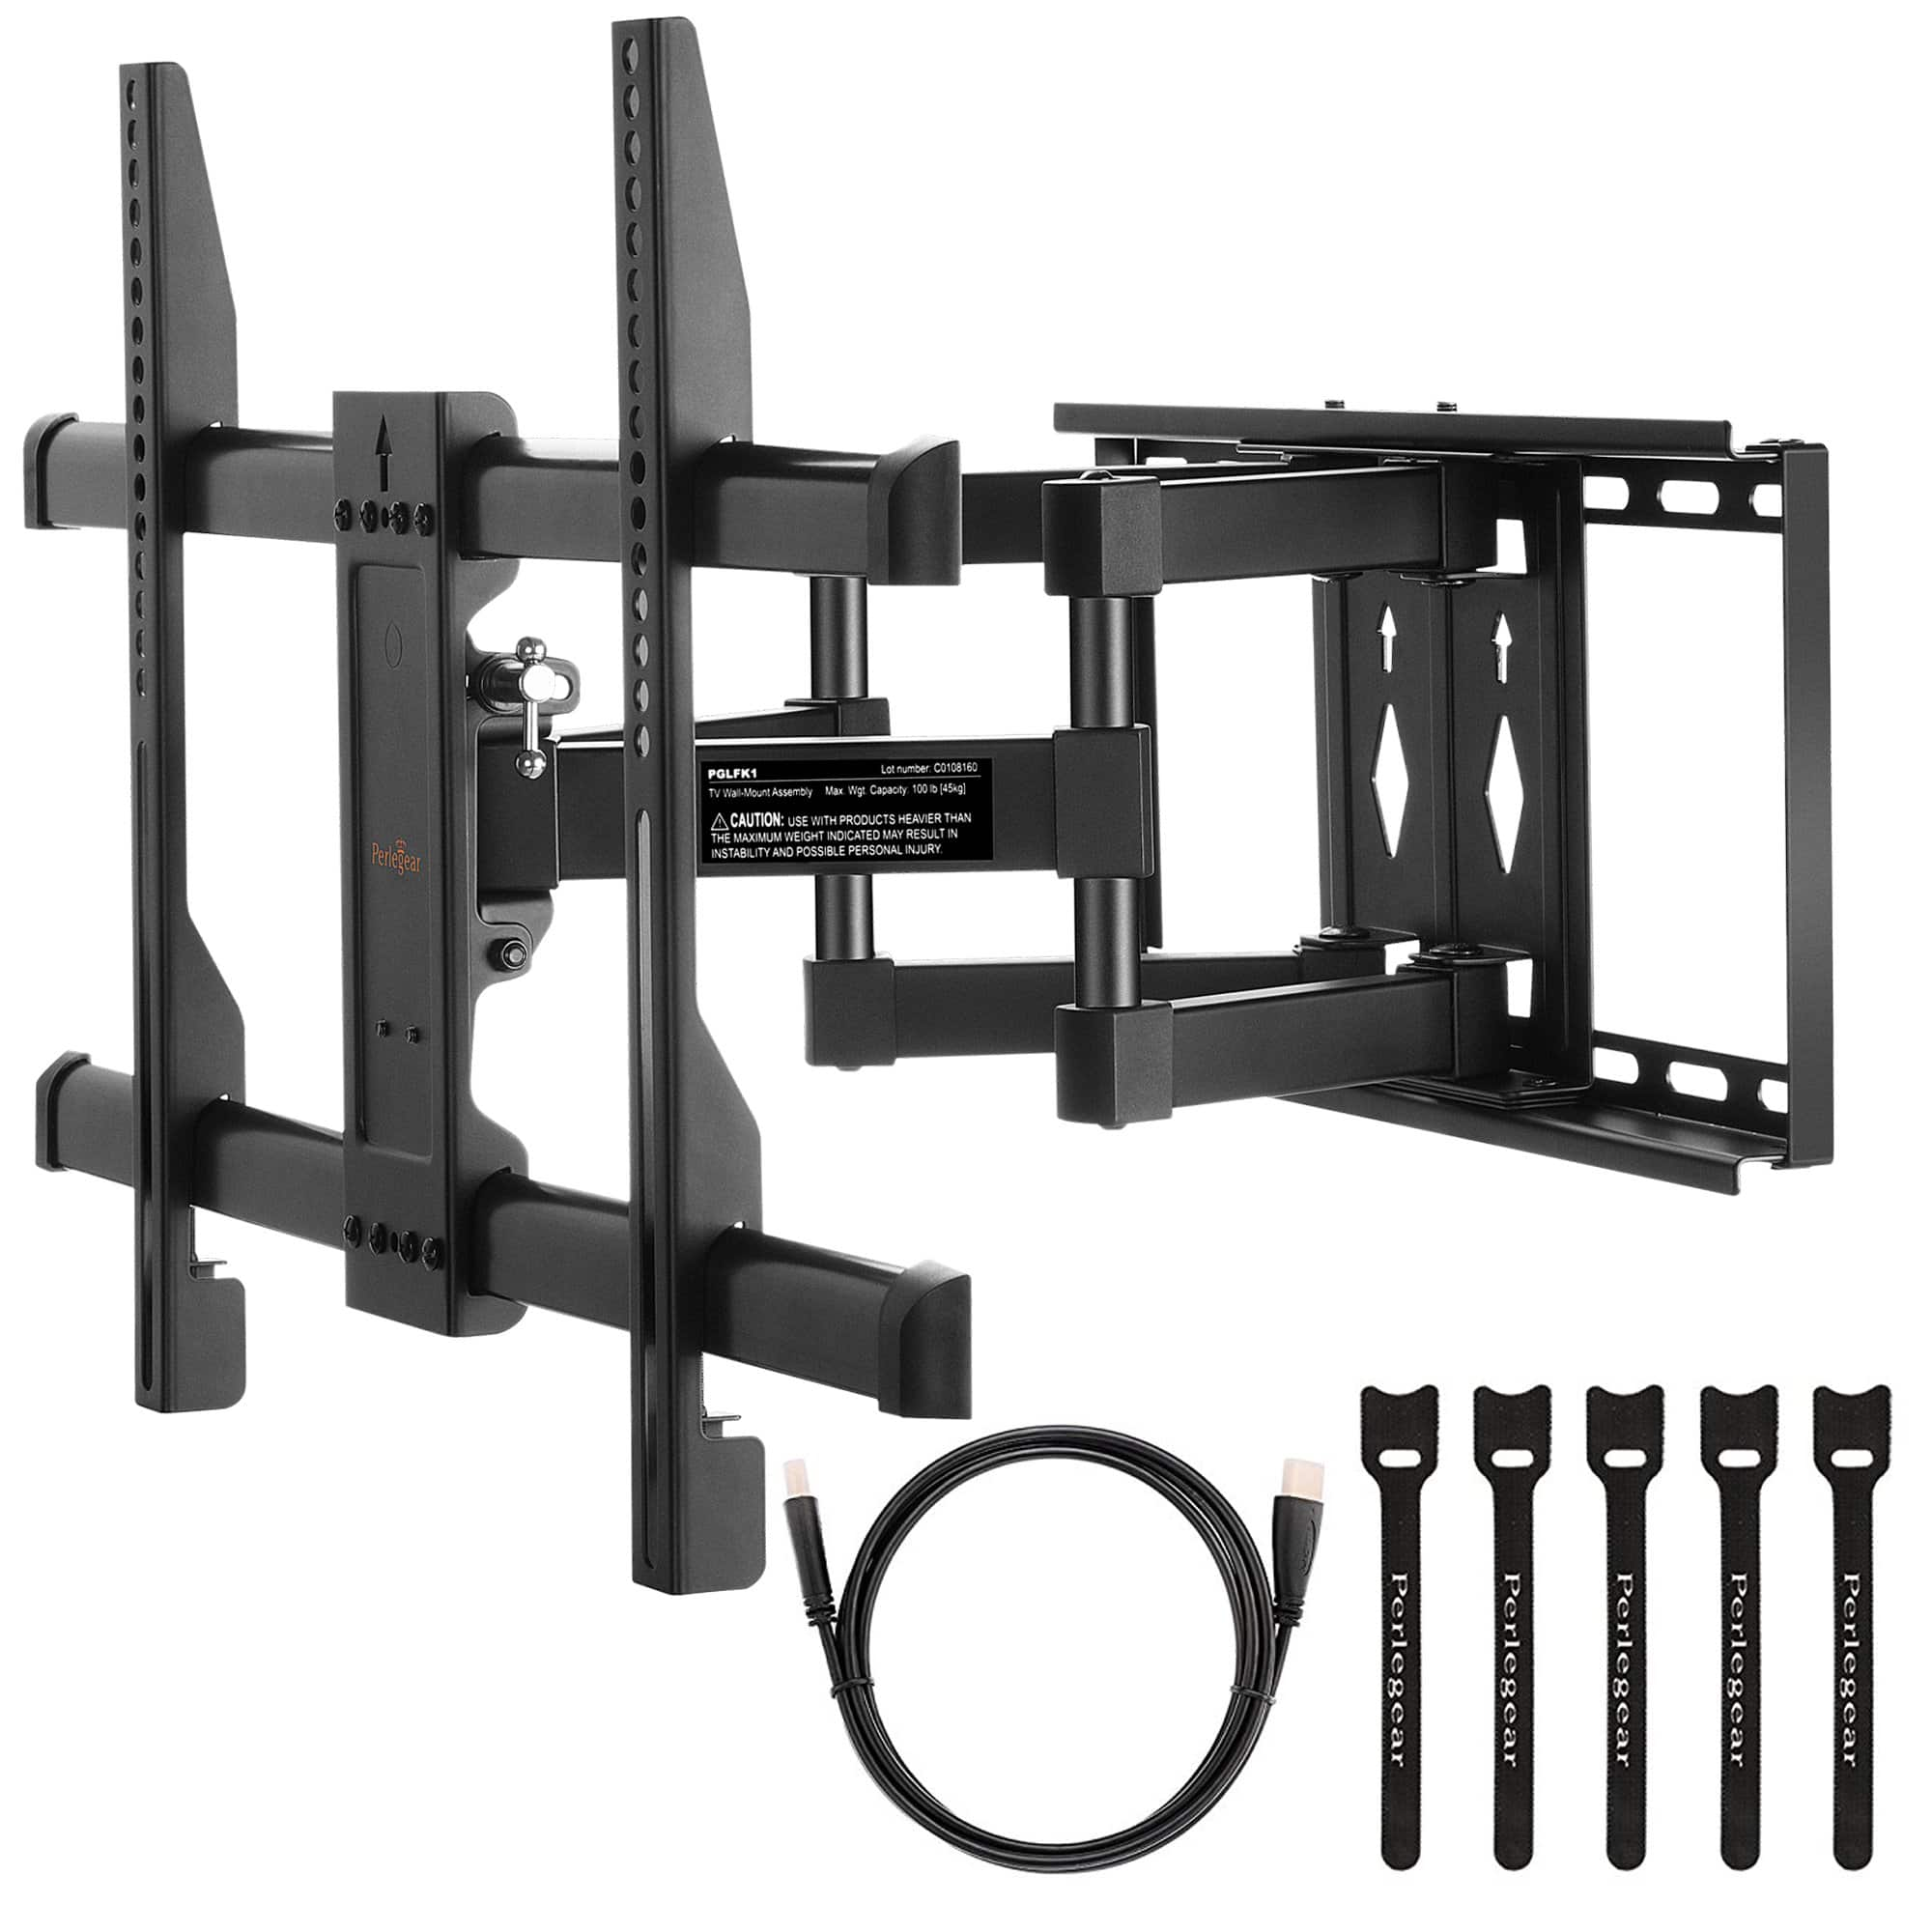 FREE! + $20 S&H PERLESMITH TV Wall Mount Bracket Full Motion Dual Articulating Arm for most 37-70 Inch up to 150LBS